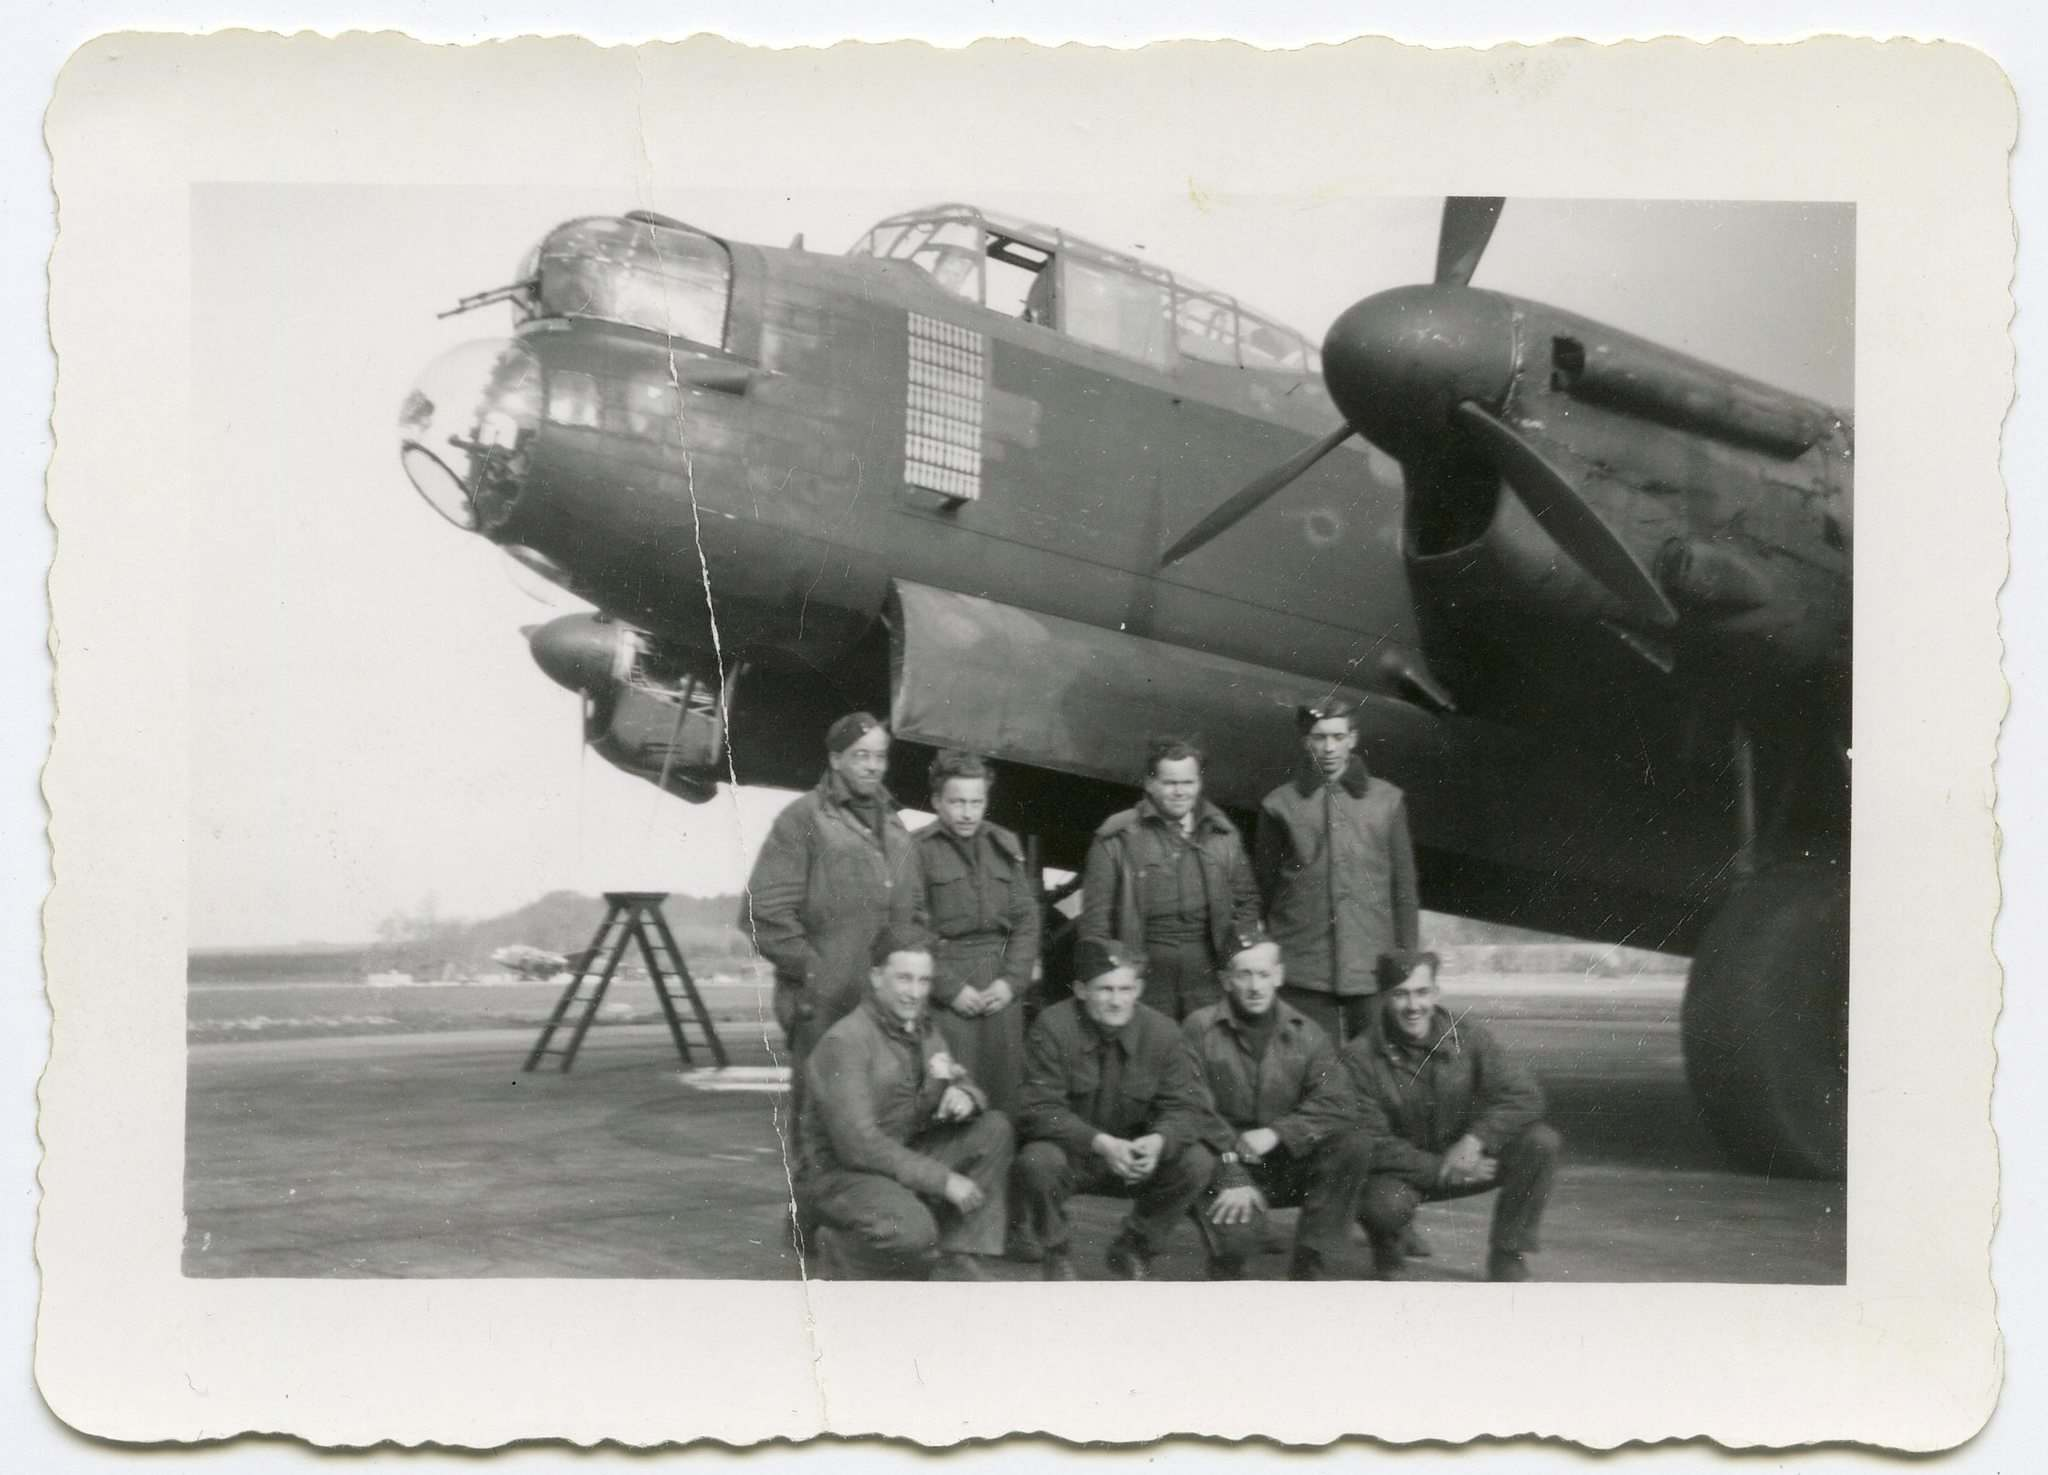 Friedman with his Lancaster bomber crew which flew 58 missions.